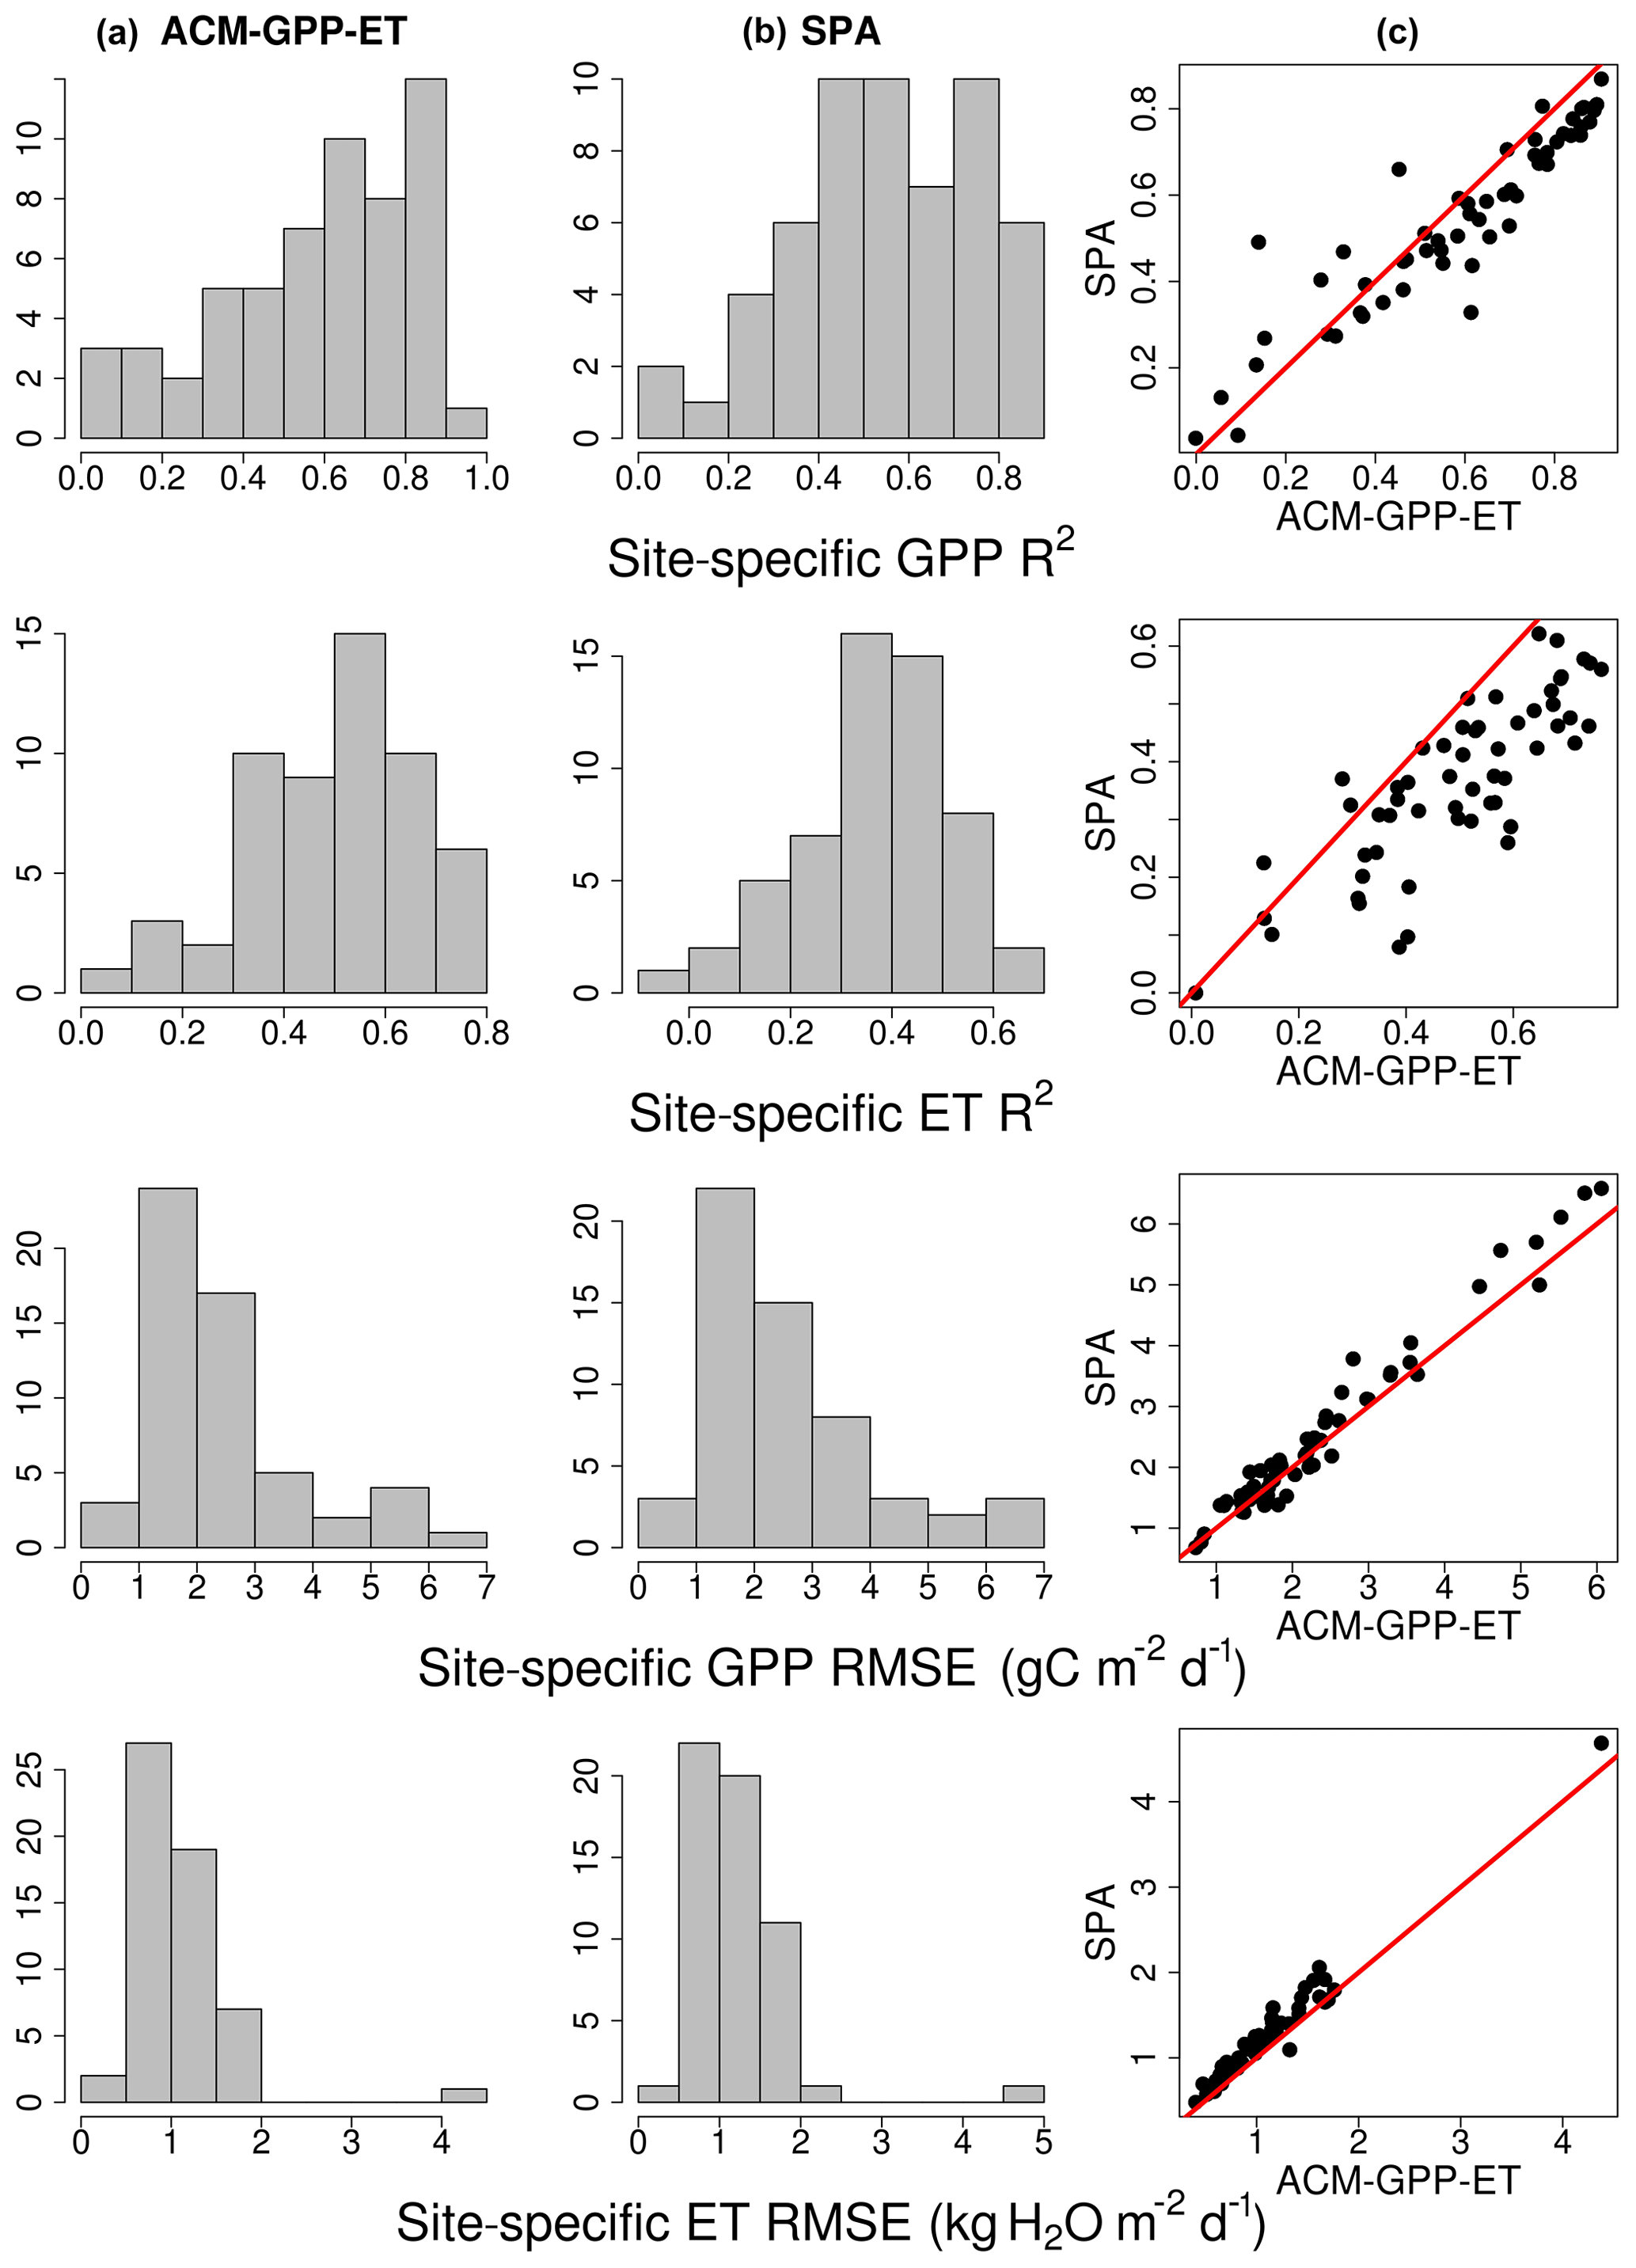 GMD - Description and validation of an intermediate complexity model